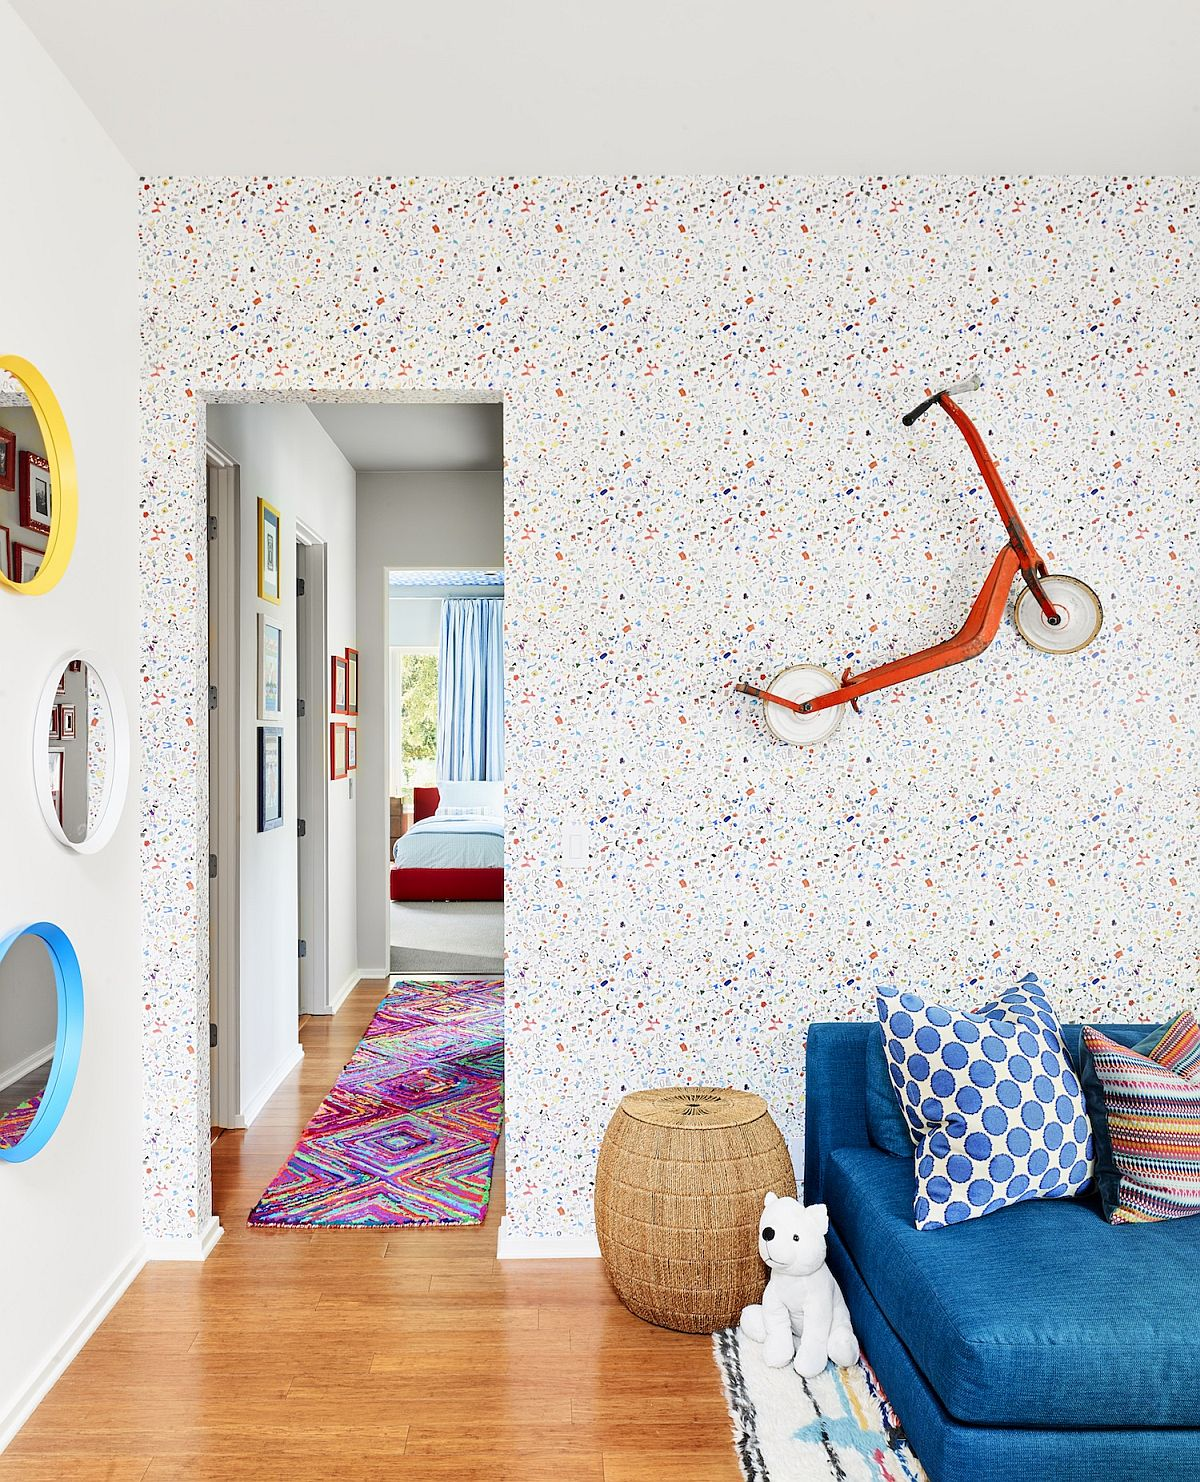 Custom wallpaper and little scooter on the wall bring eclectic charm to this lovely little room